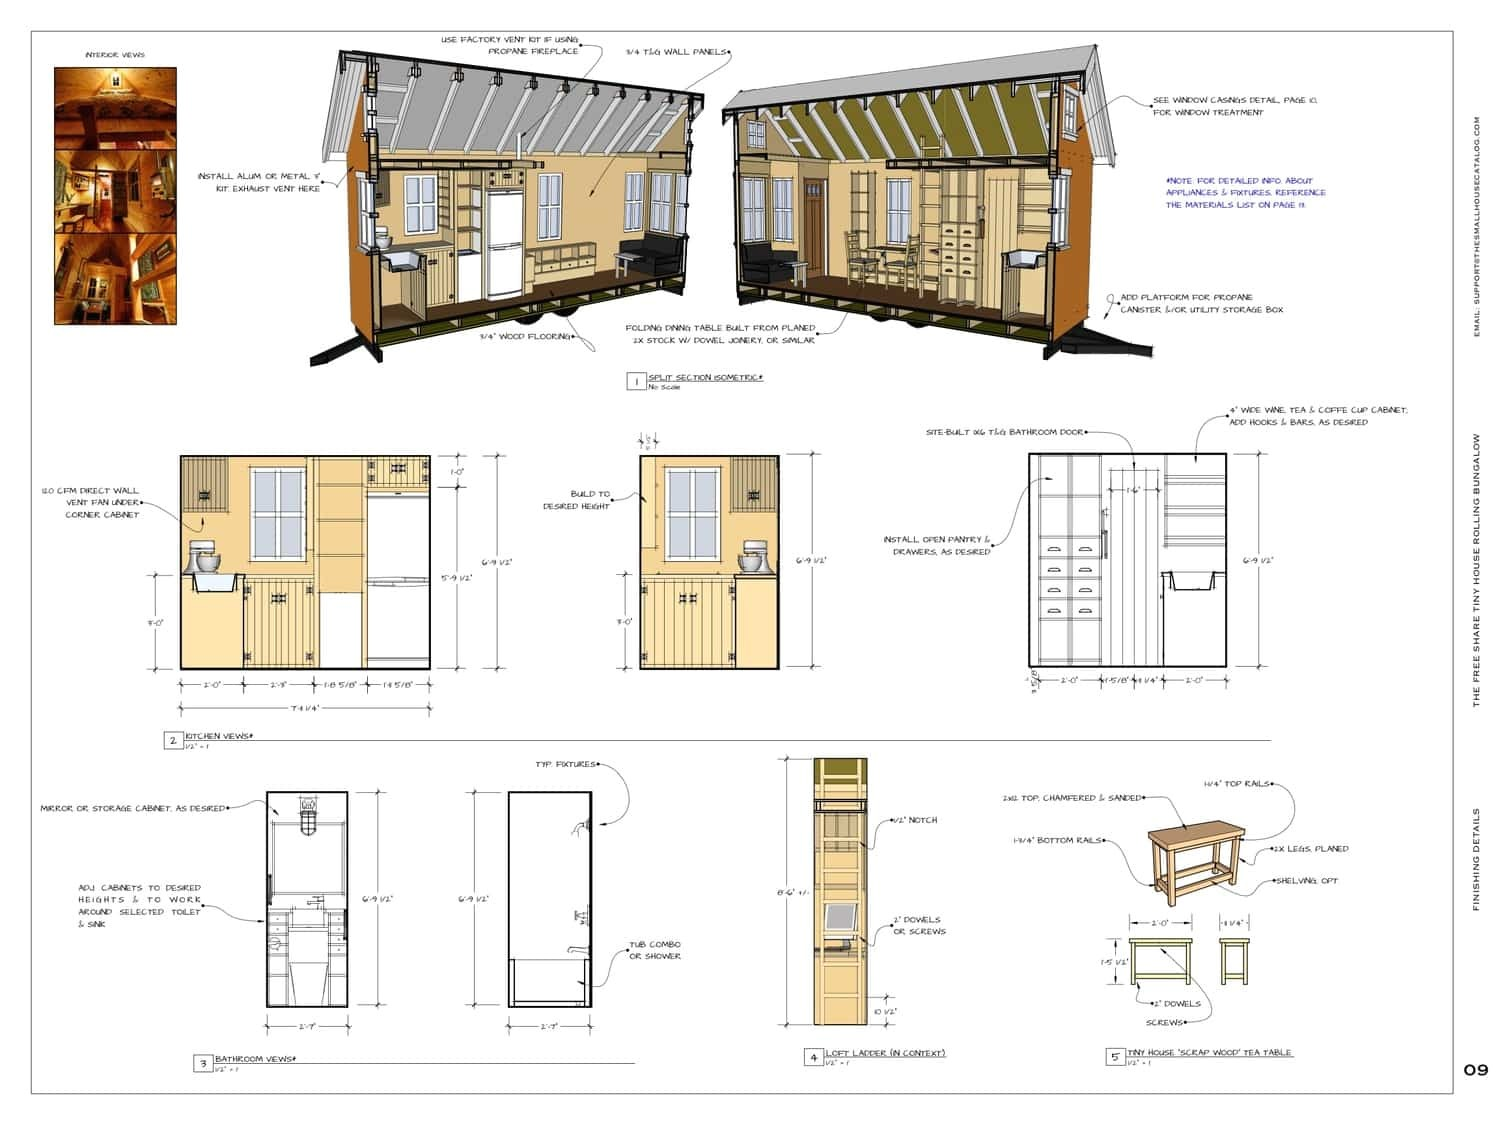 Tiny Home Plan Get Free Plans to Build This Adorable Tiny Bungalow Tiny